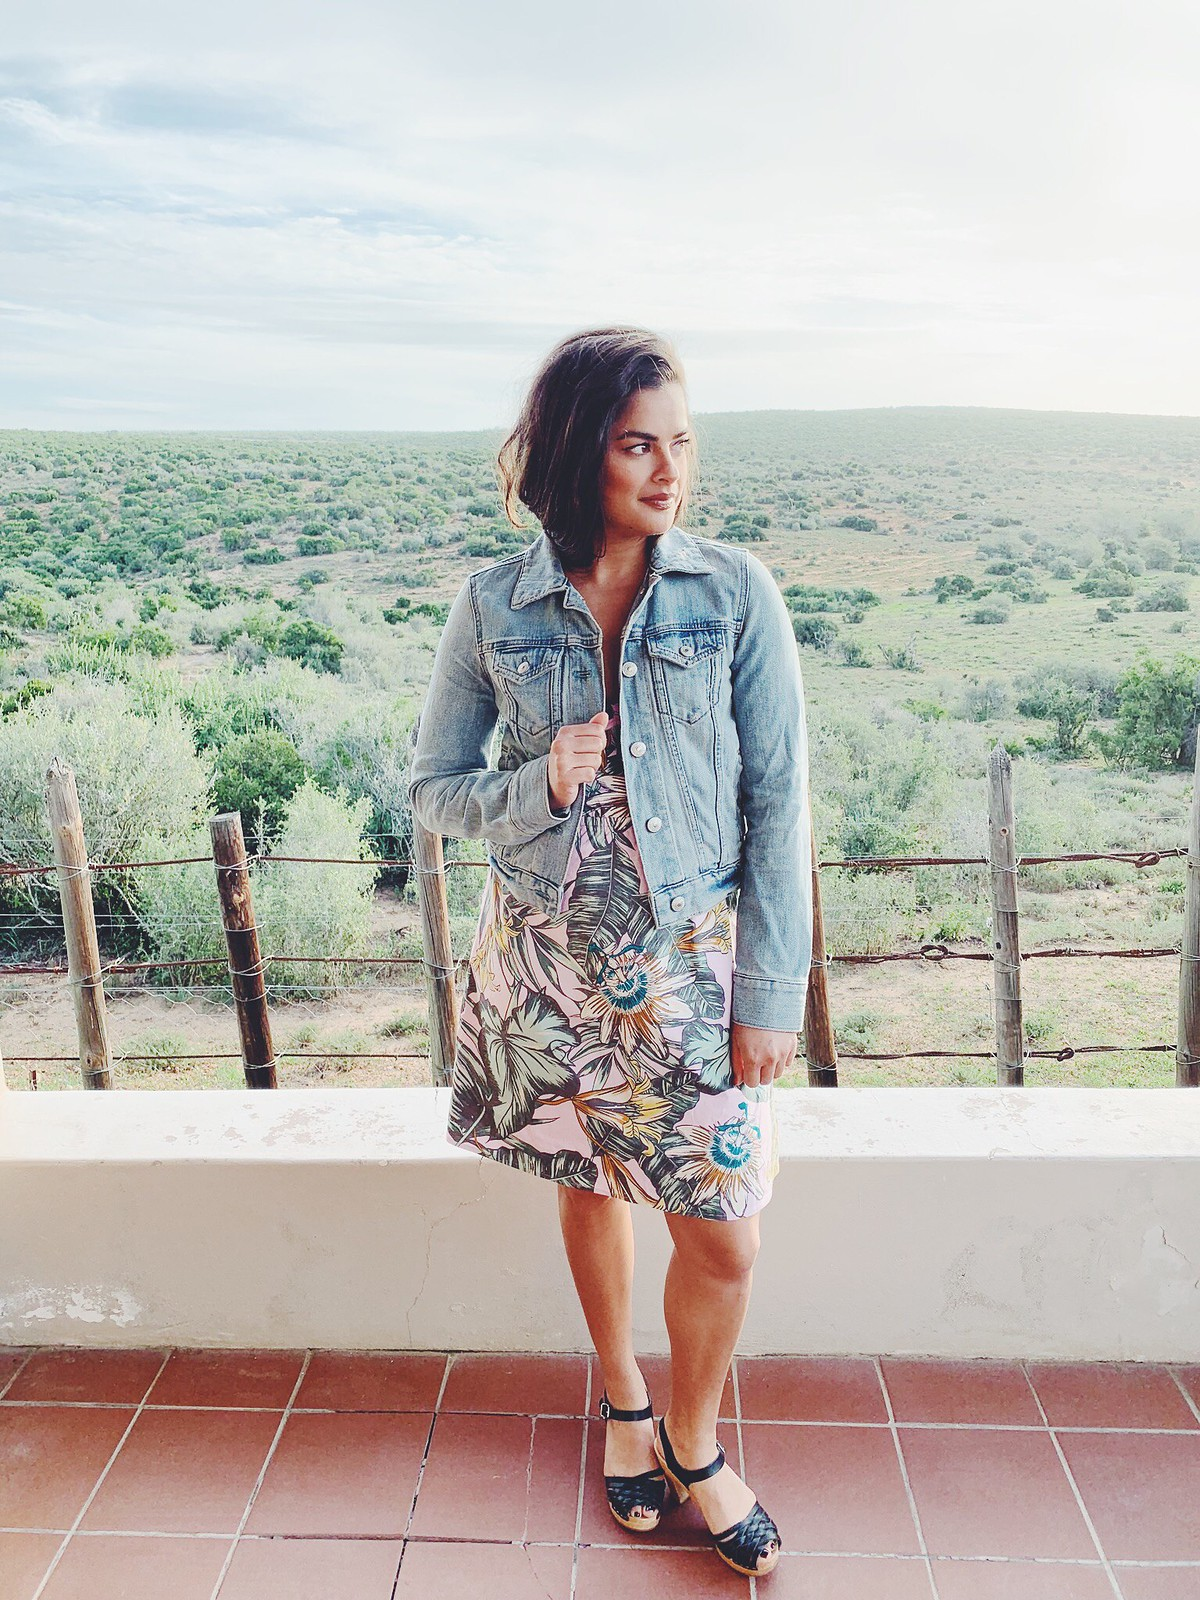 Priya the Blog, Nashville fashion blog, Nashville style blog, Nashville fashion blogger, Nashville style blogger, Nashville travel blogger, South Africa travel, Addo National Elephant Park, what to wear on a safari, J.Crew tropical sundress, Swedish Hasbeens clogs, safari outfit